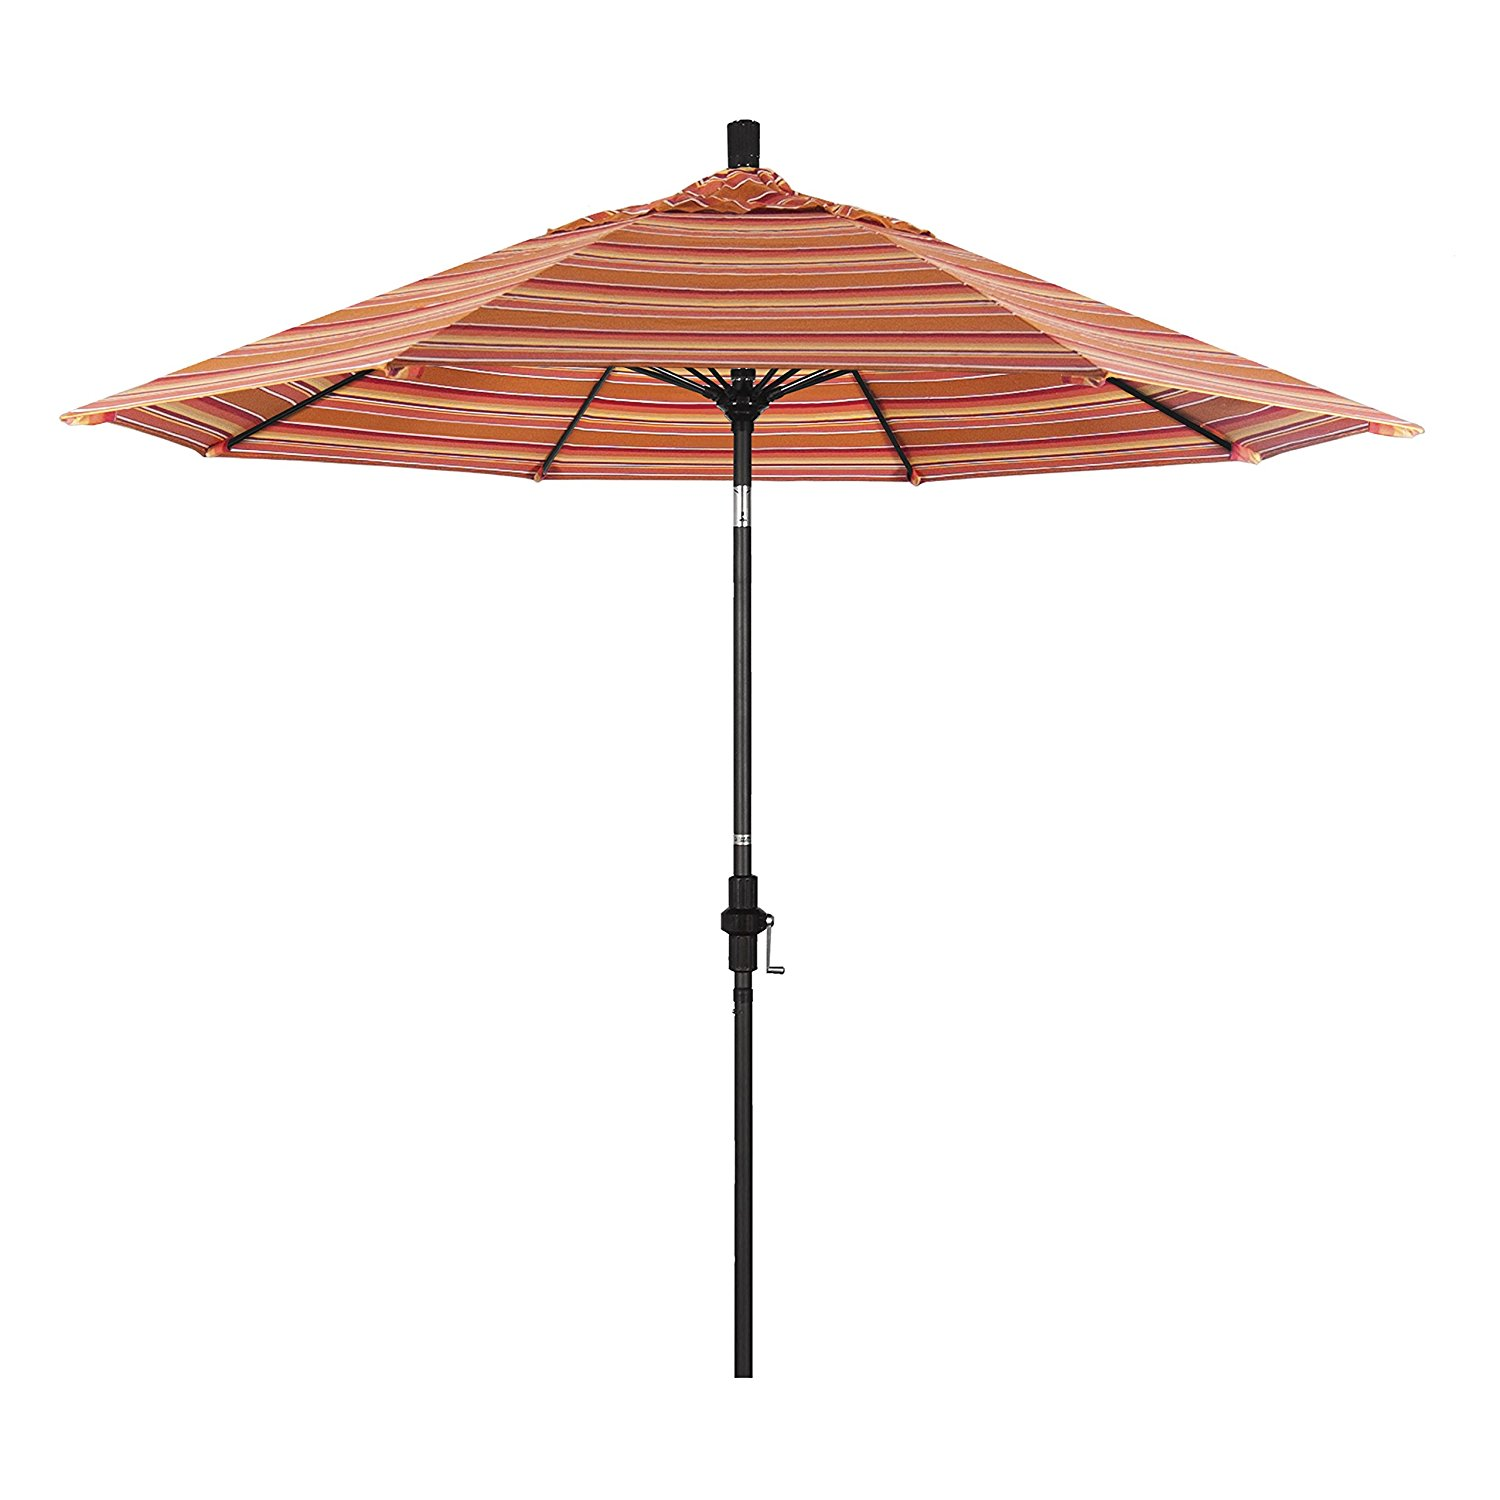 aluminum yellow outdoors and patio accessories categories home umbrella depot canada the en market in umbrellas furniture p windproof